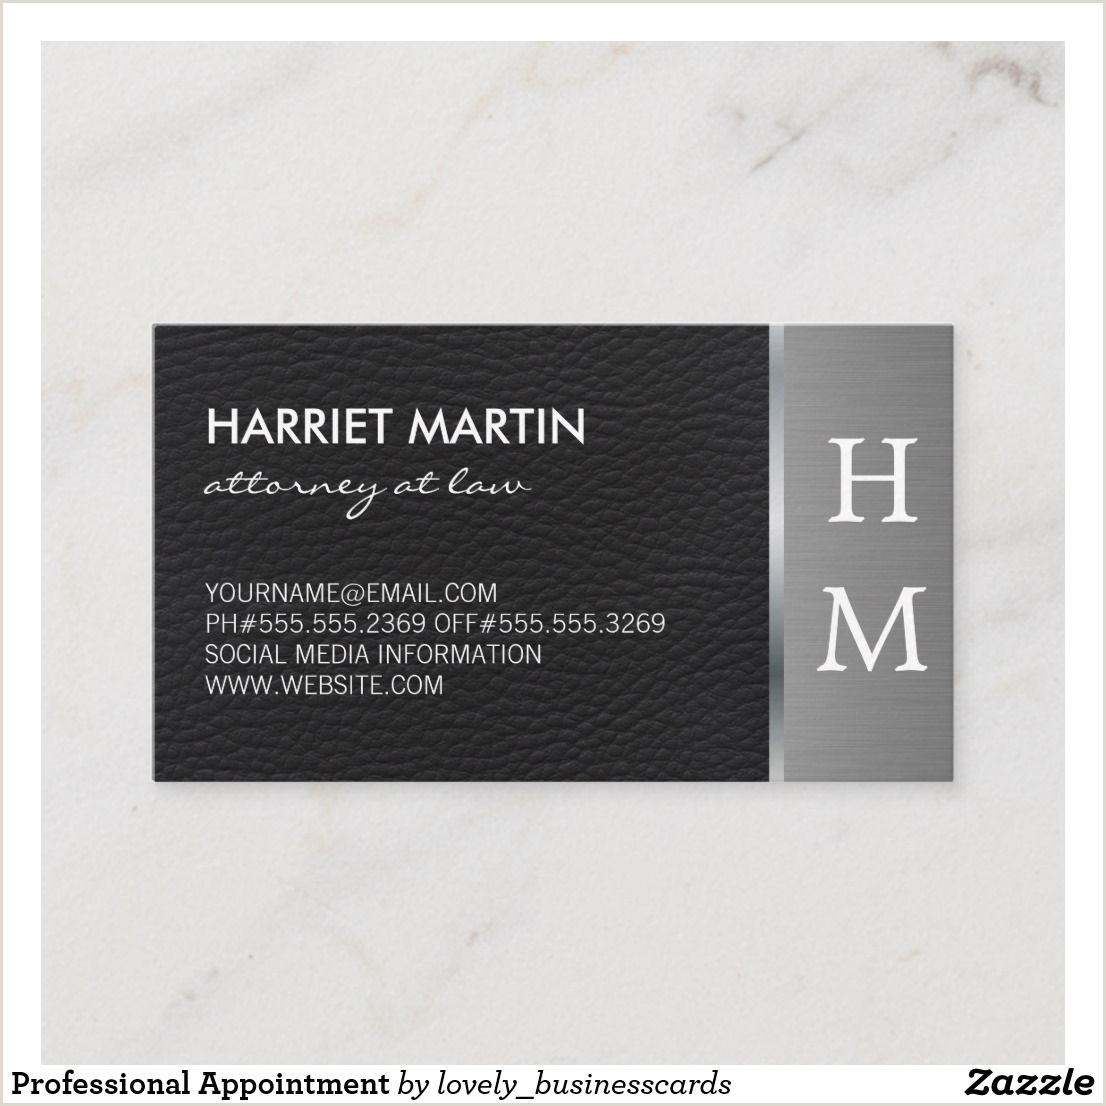 Information On A Business Card Professional Appointment Zazzle